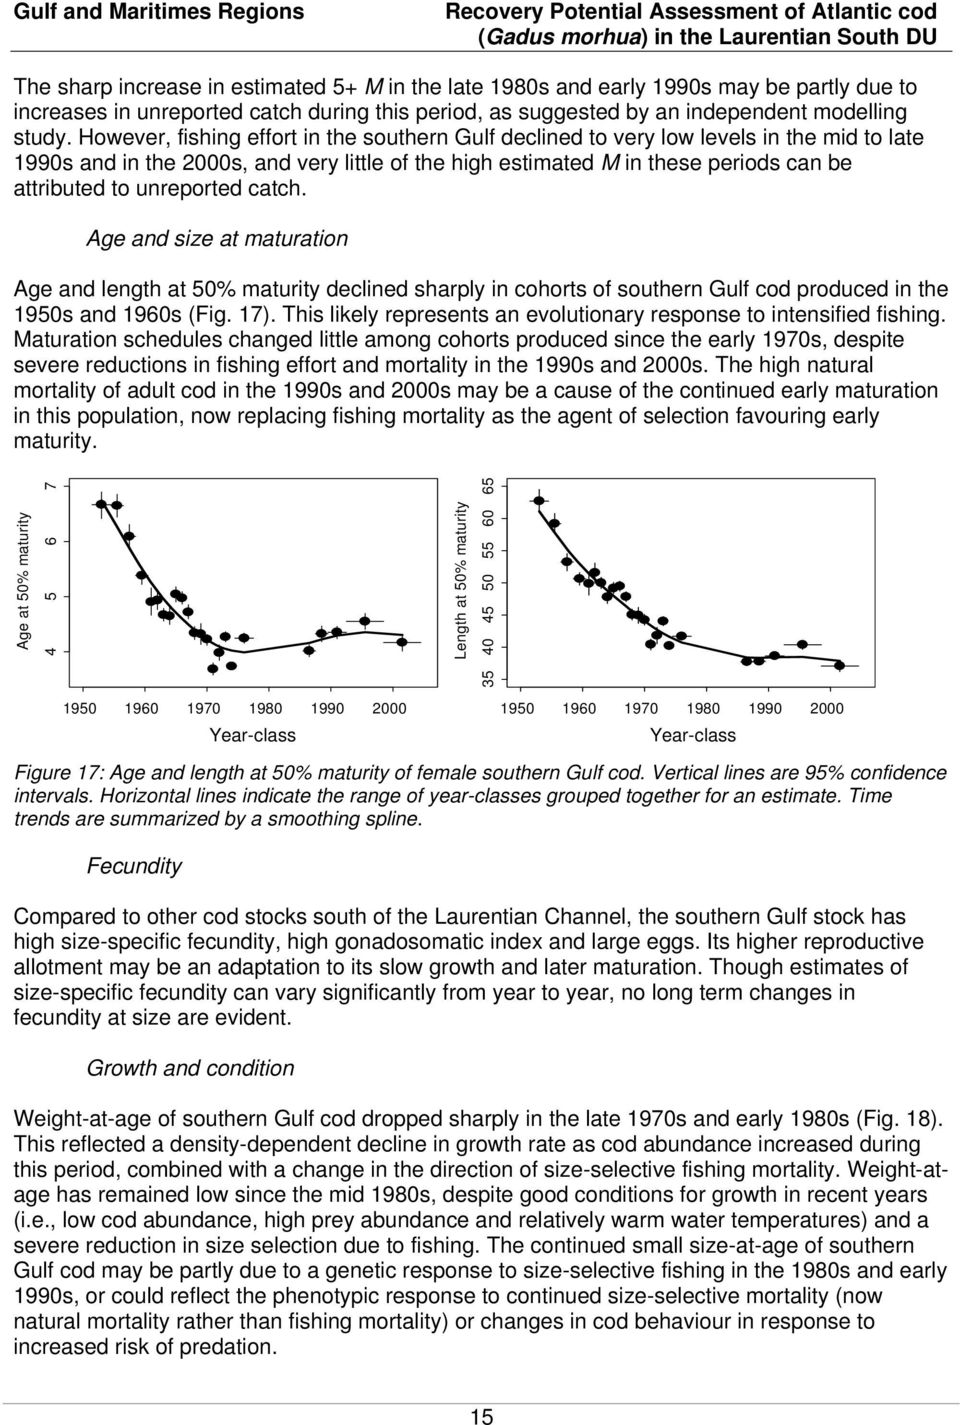 unreported catch. Age and size at maturation Age and length at 5% maturity declined sharply in cohorts of southern Gulf cod produced in the 195s and 196s (Fig. 17).